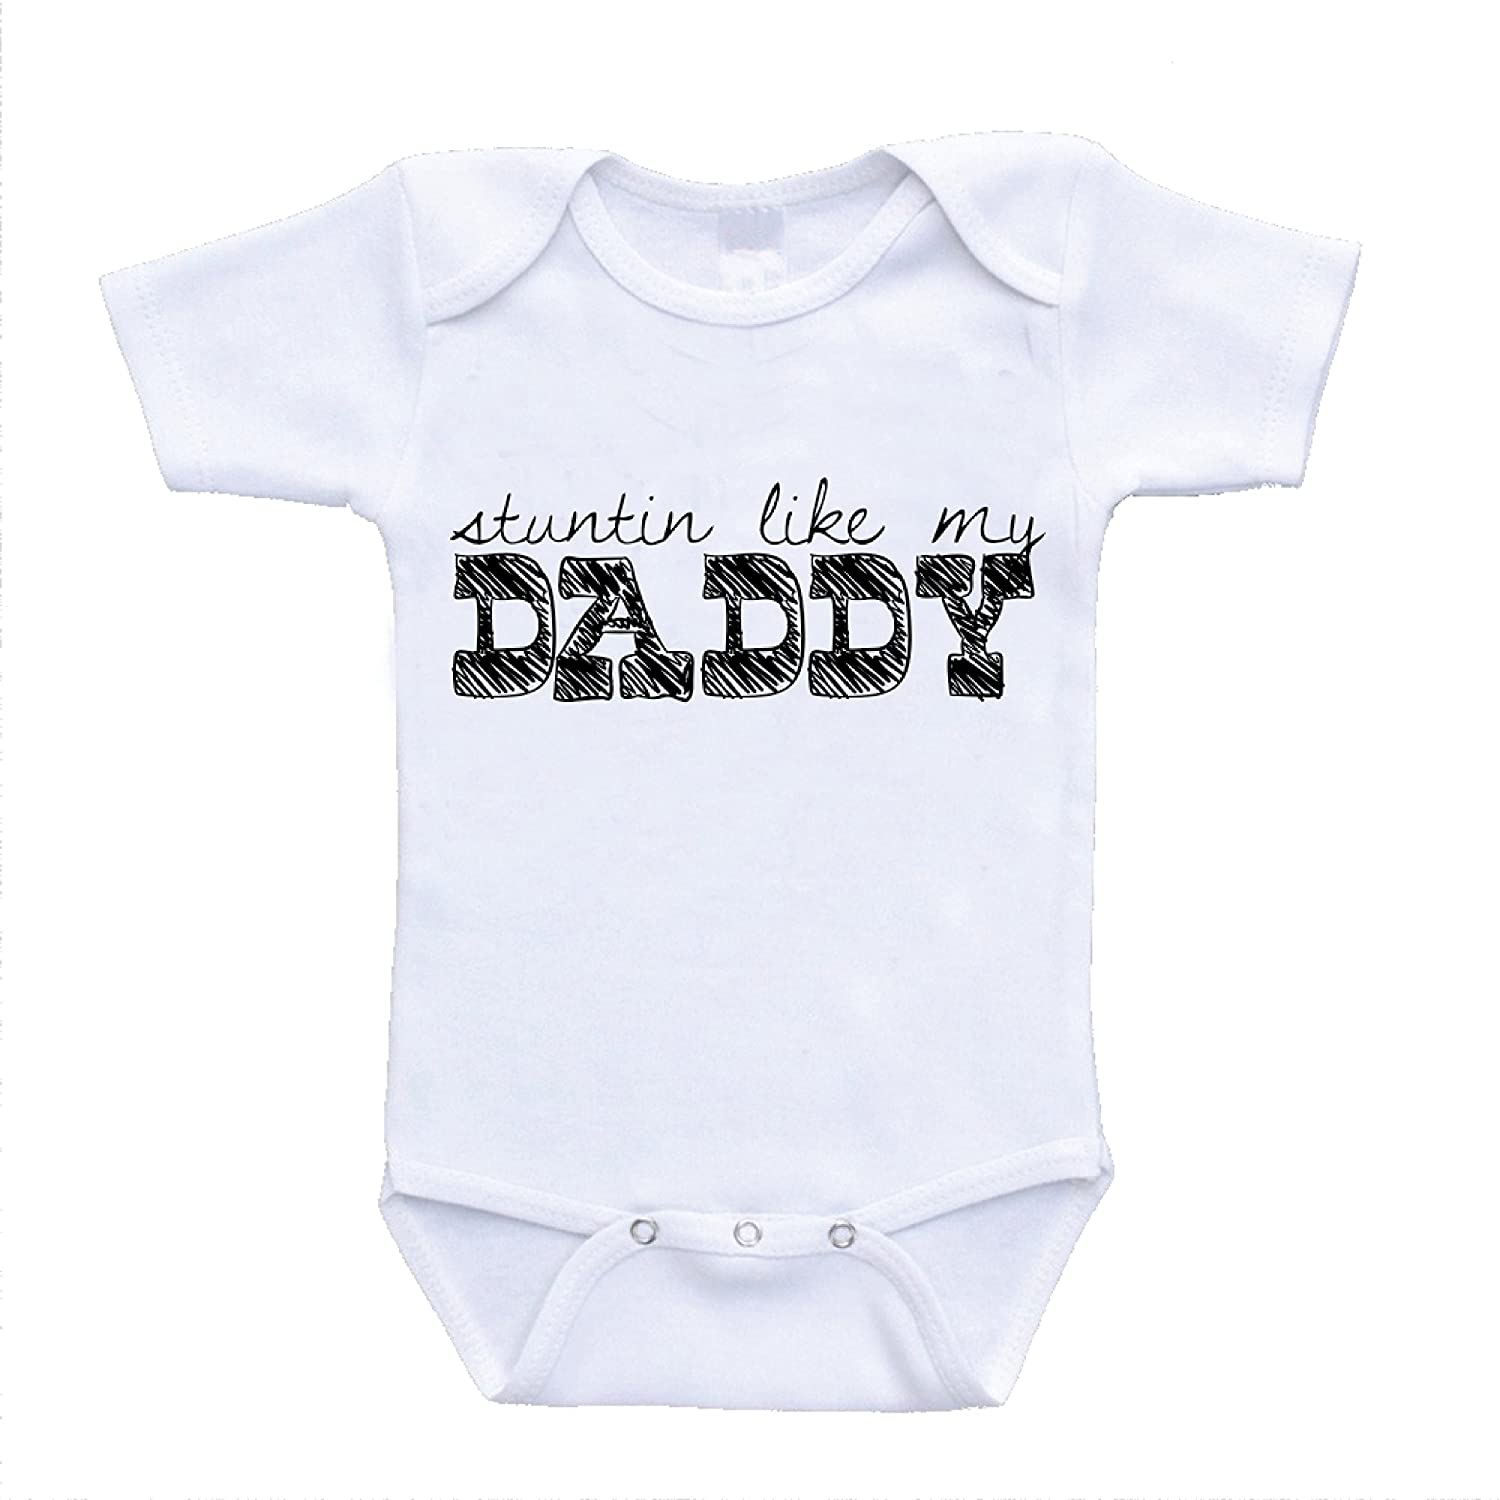 Awesome Images Of Daddys Boy Baby Clothes - Cutest Baby ...